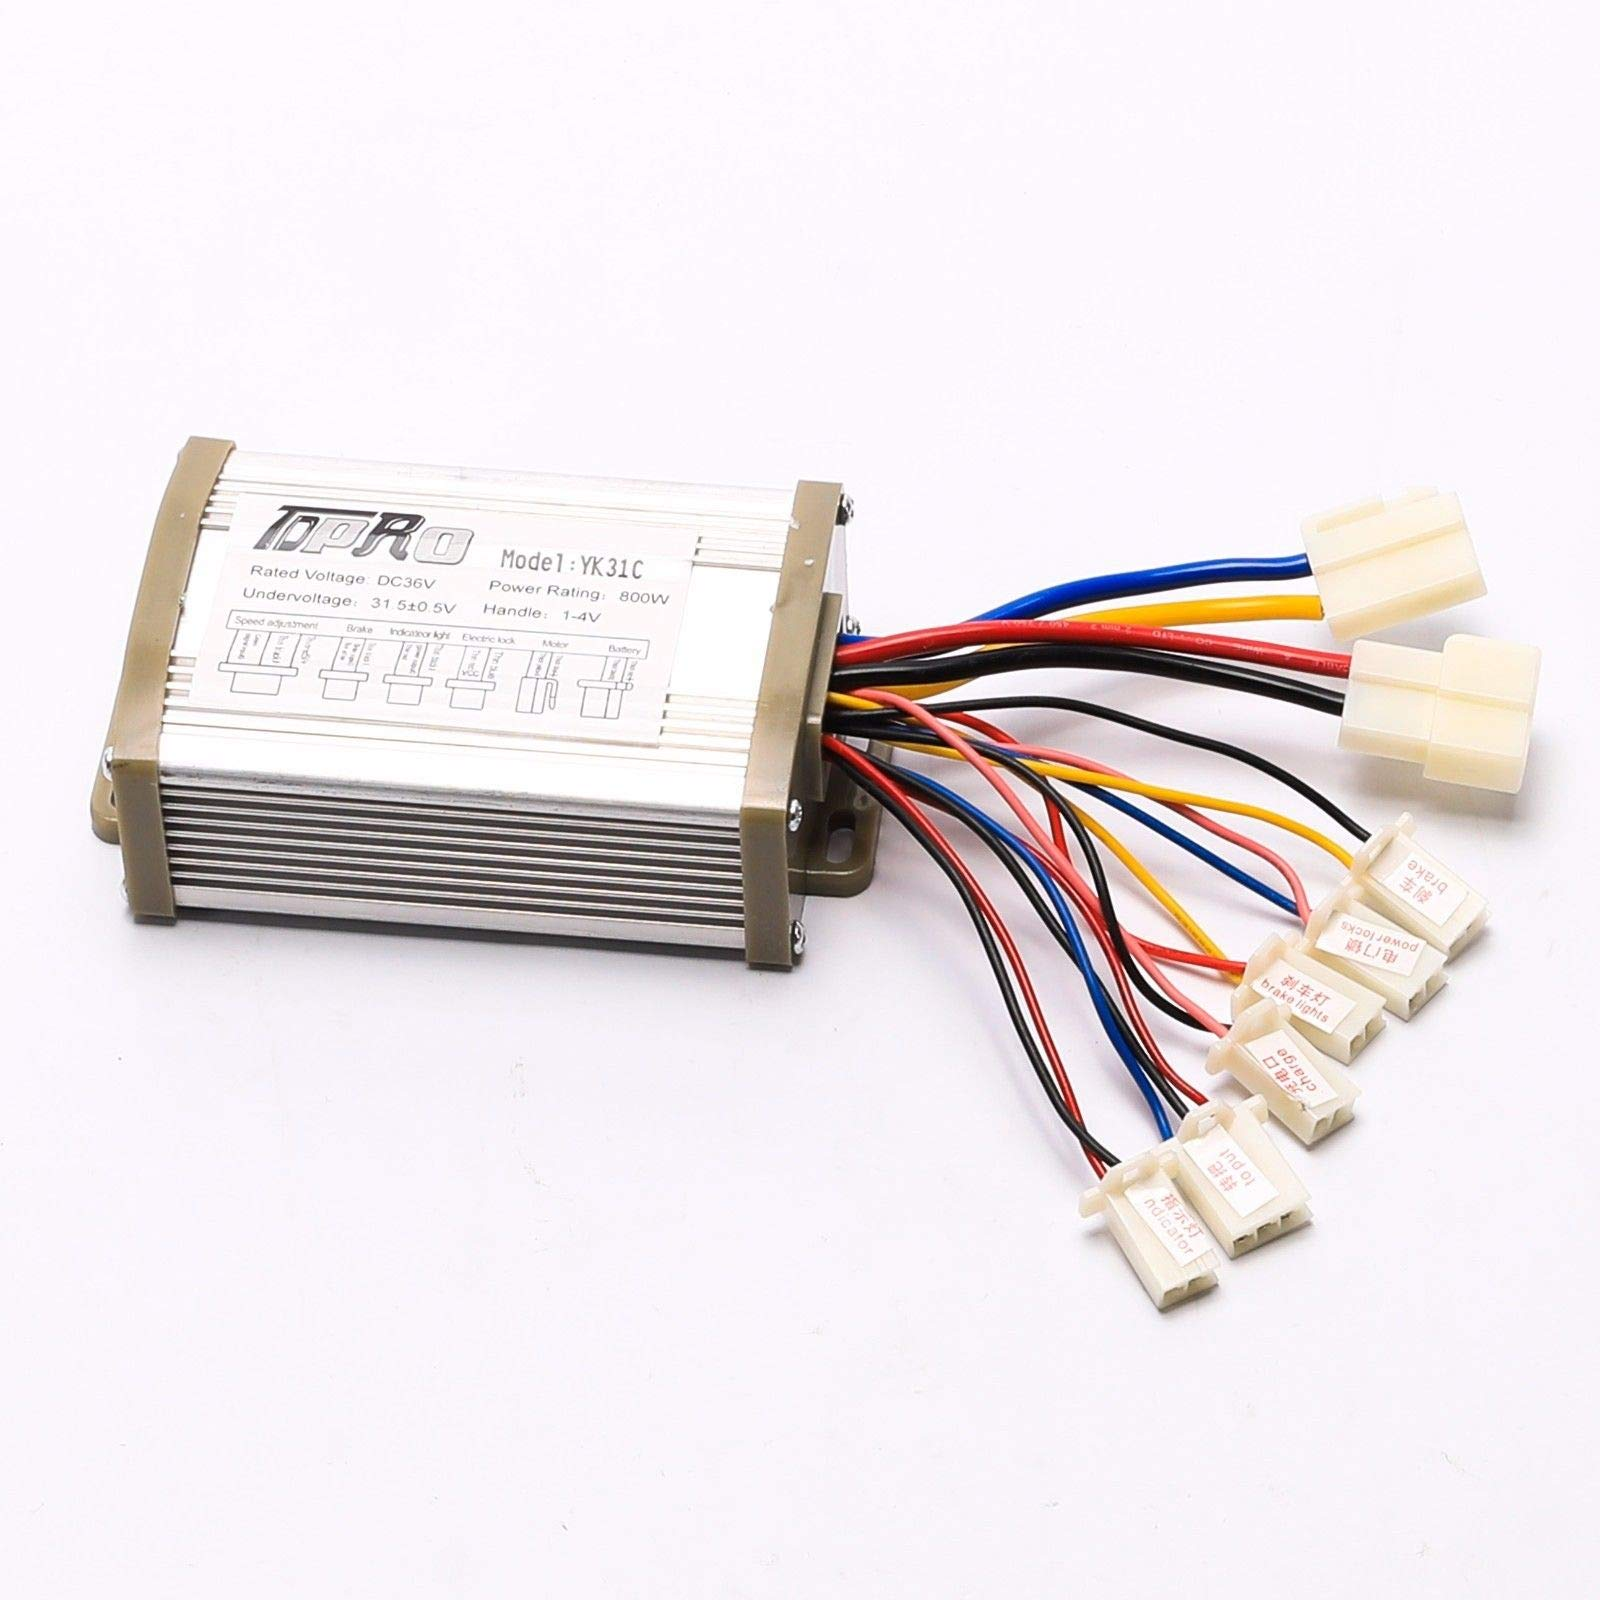 36V 800w Brushed Speed Control Unit Controller